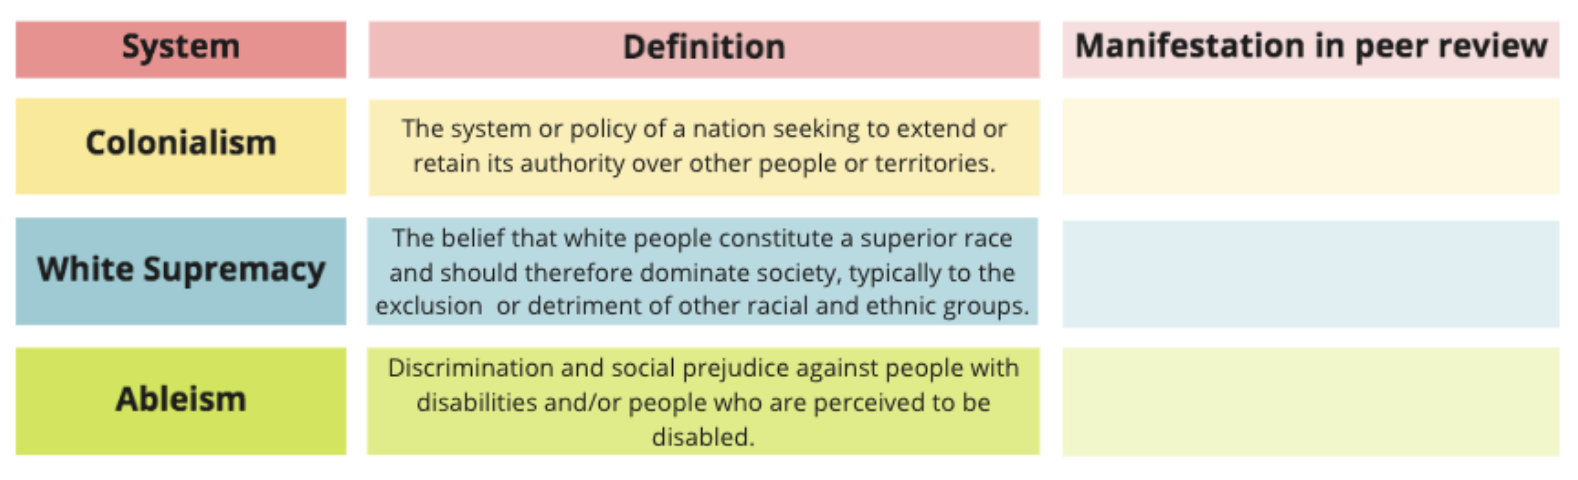 Exercise prompt: examine how systemic colonialism, white supremac, and ableism manifest in peer review